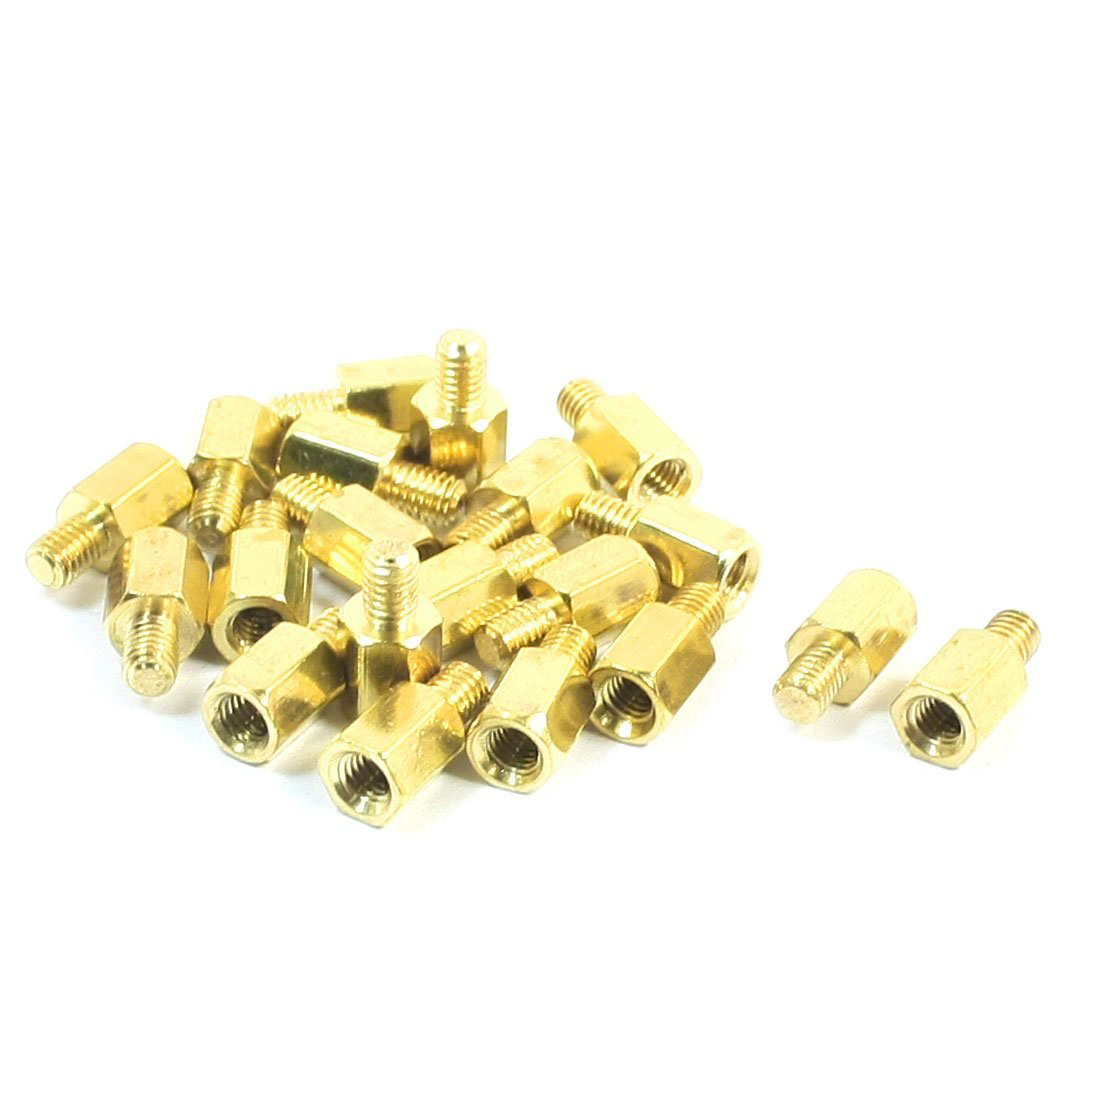 20 Pcs PC PCB Motherboard Brass Standoff Hexagonal Spacer M3 6+4mm 10x 6 5mm brass standoff 6 32 m3 pc case motherboard riser screws washers